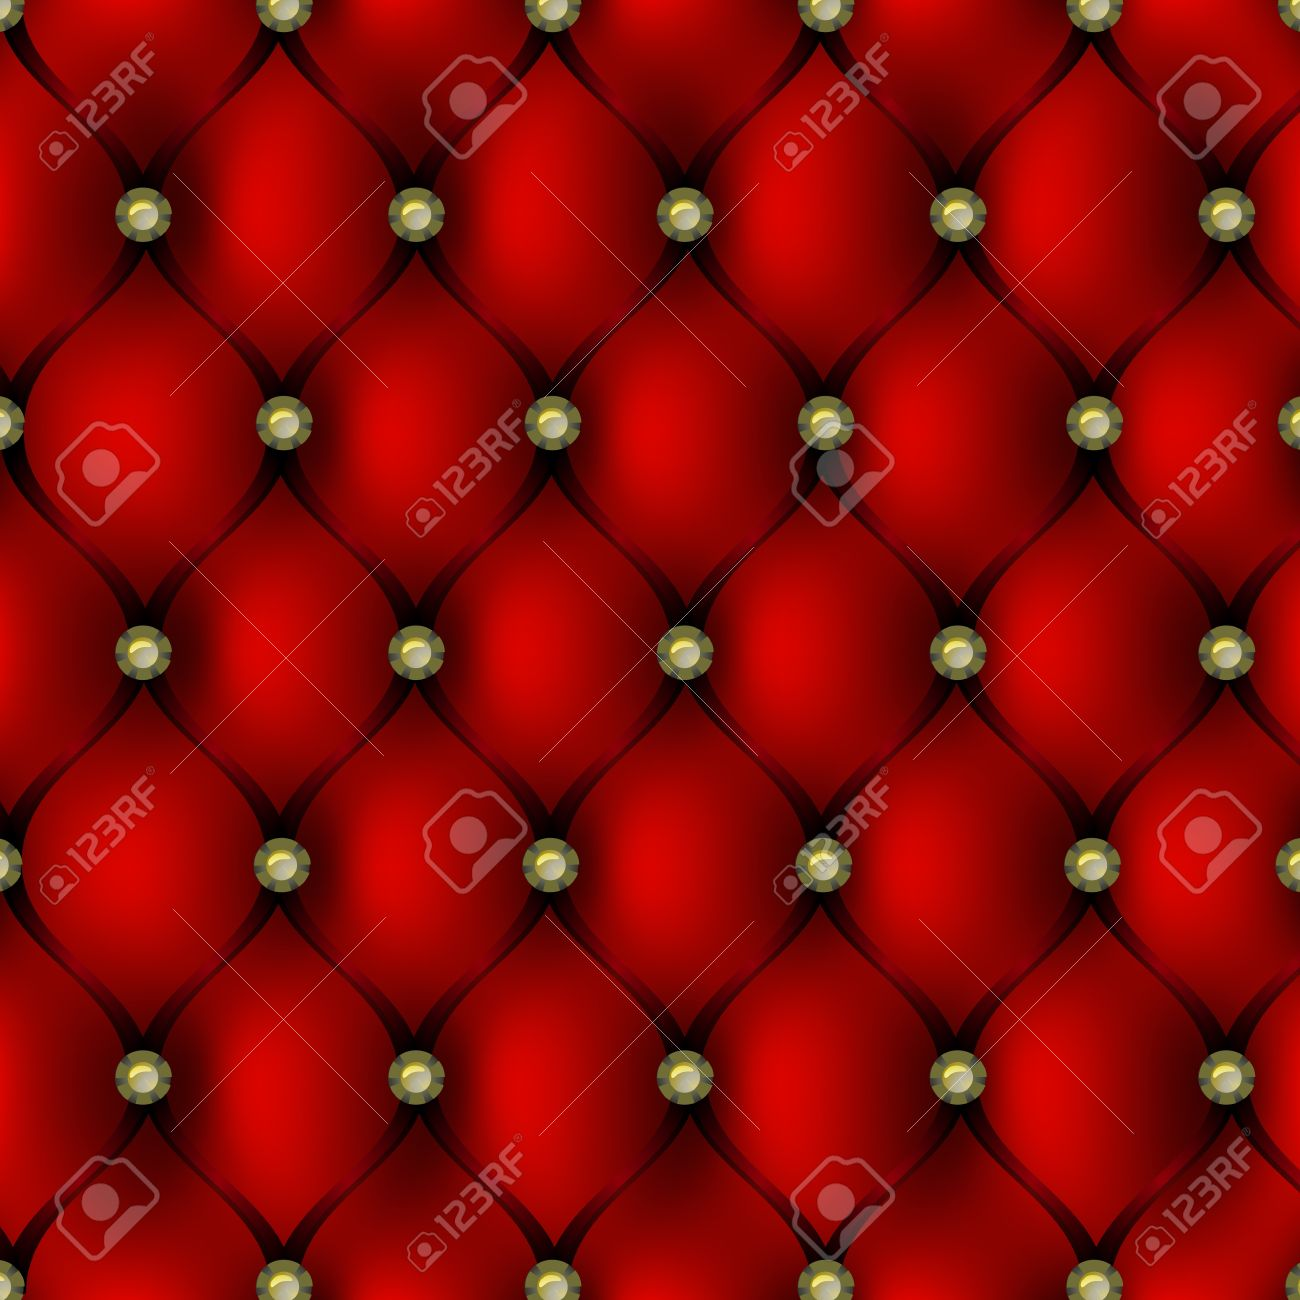 Red leather upholstery with gold button pattern background, vector illustration Stock Vector - 17581083